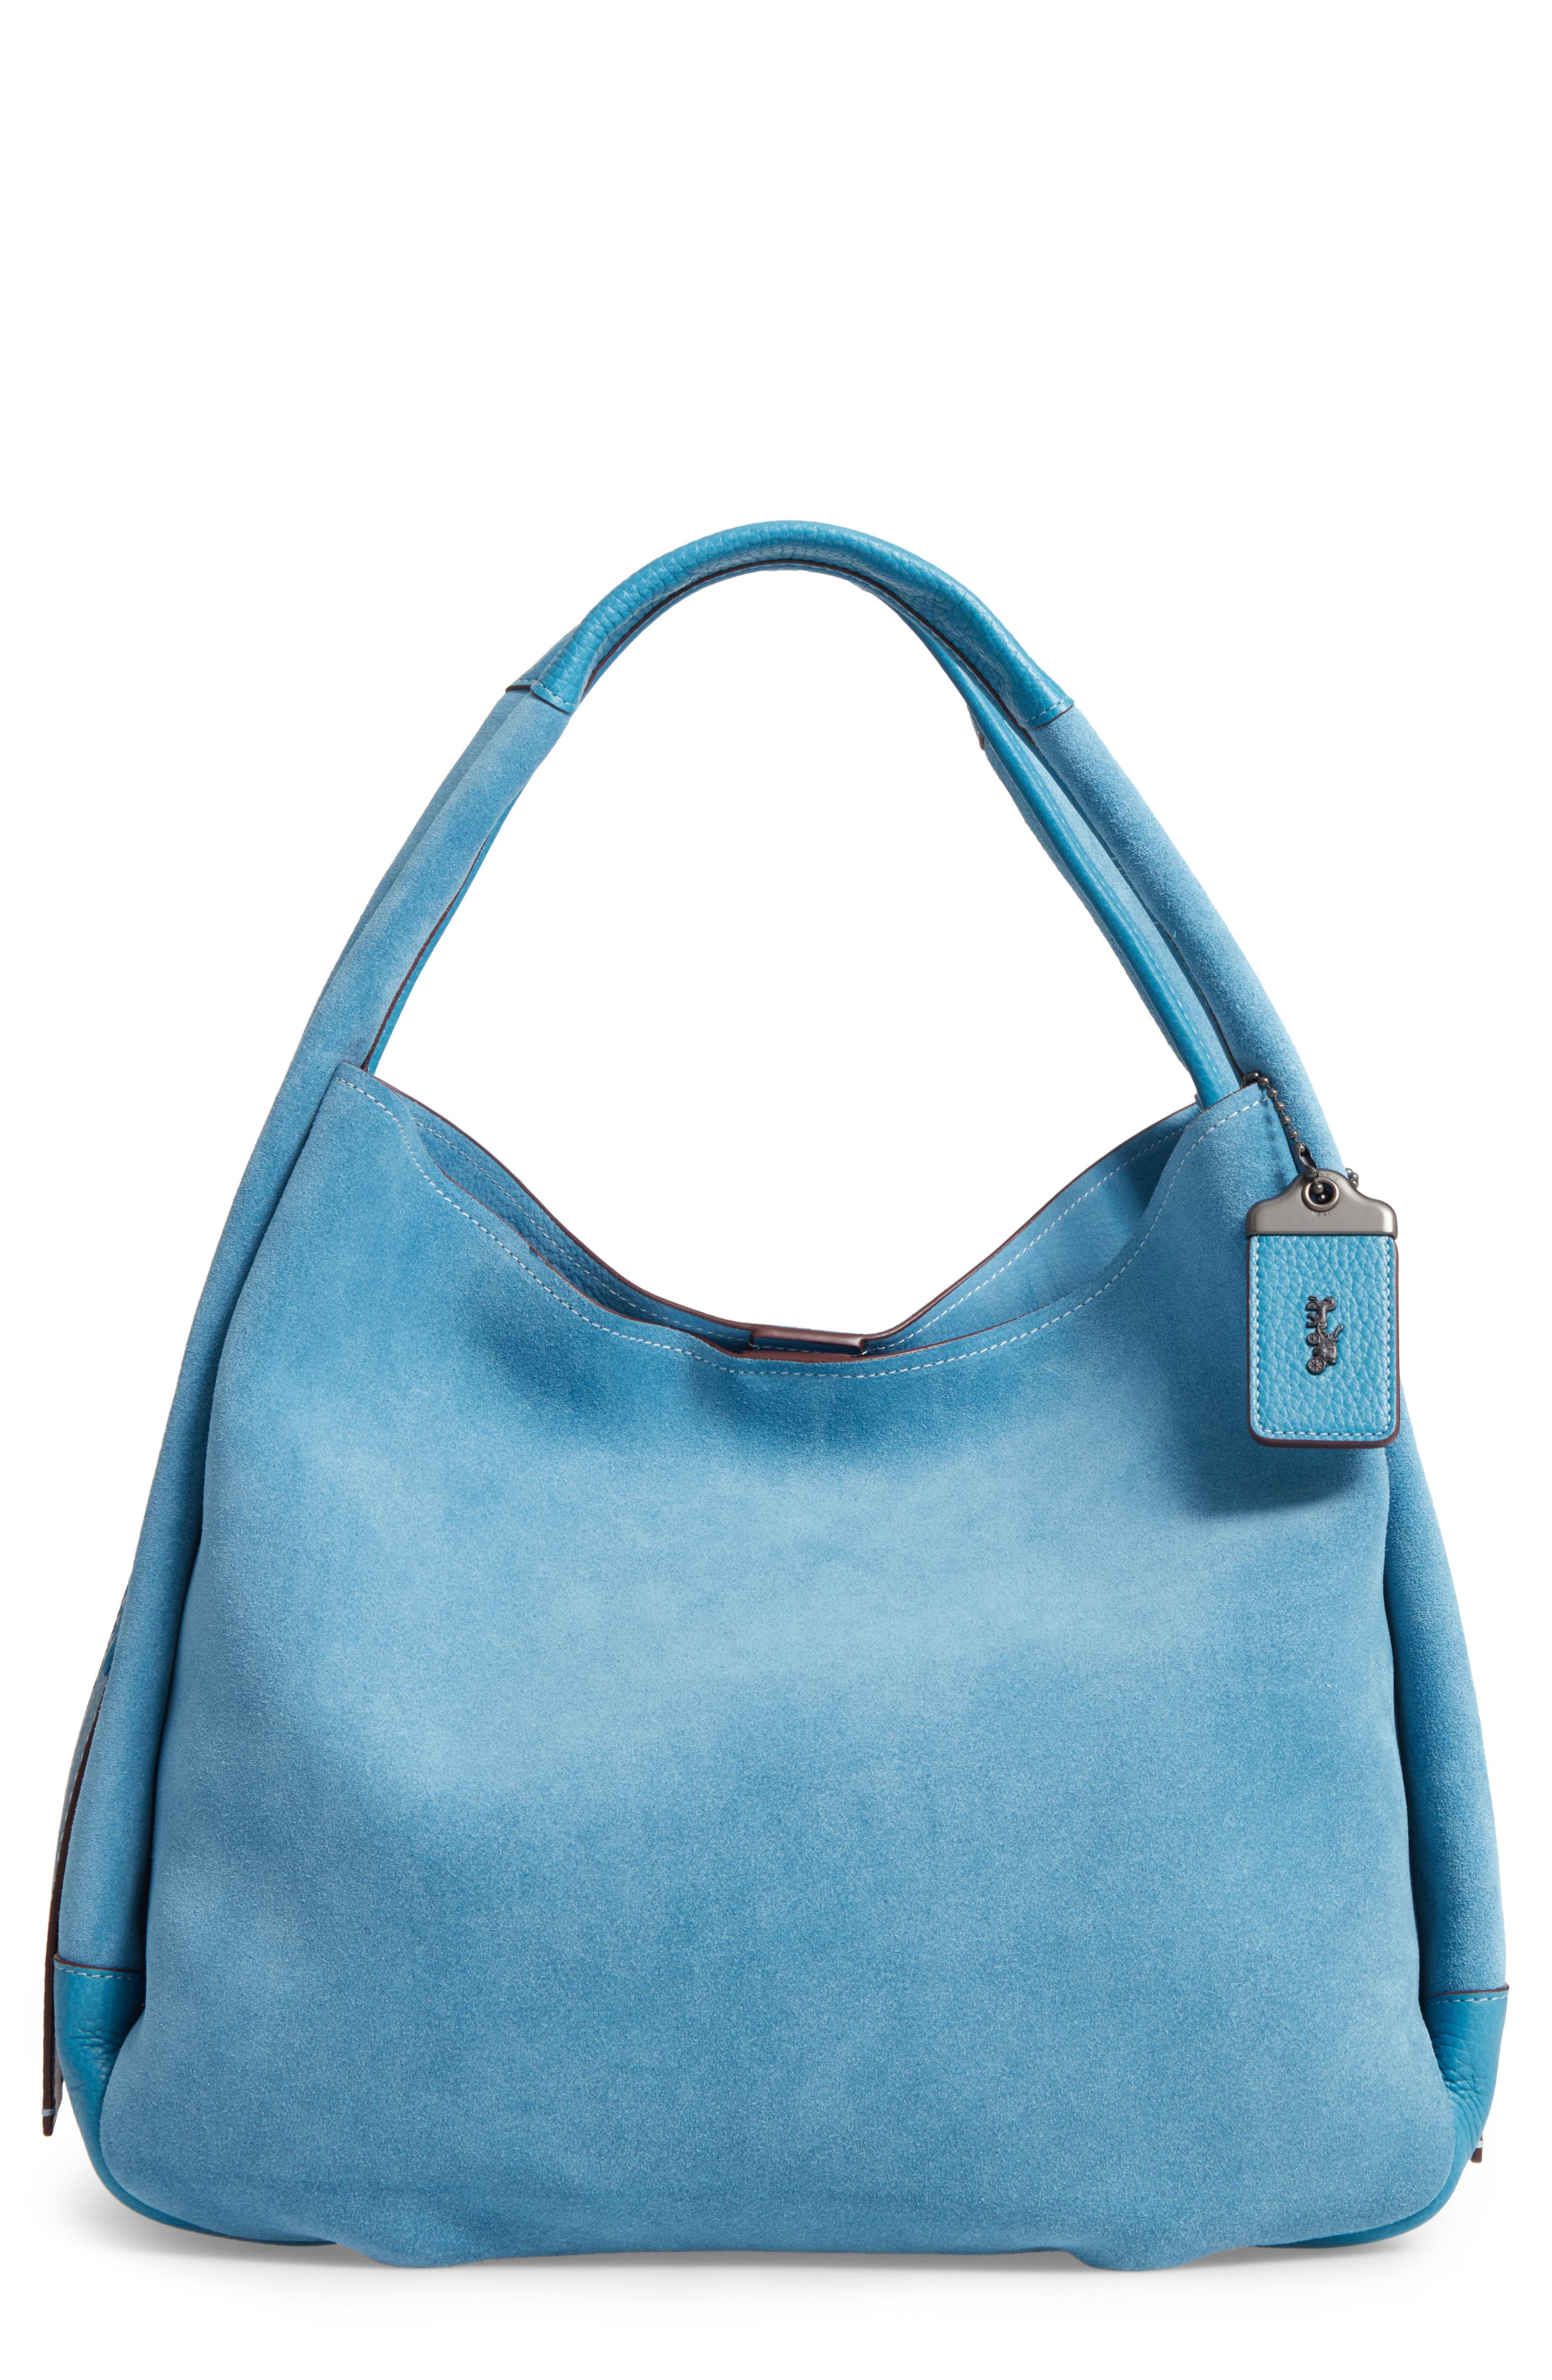 COACH 1941 Bandit Suede Hobo & Removable Shoulder Bag